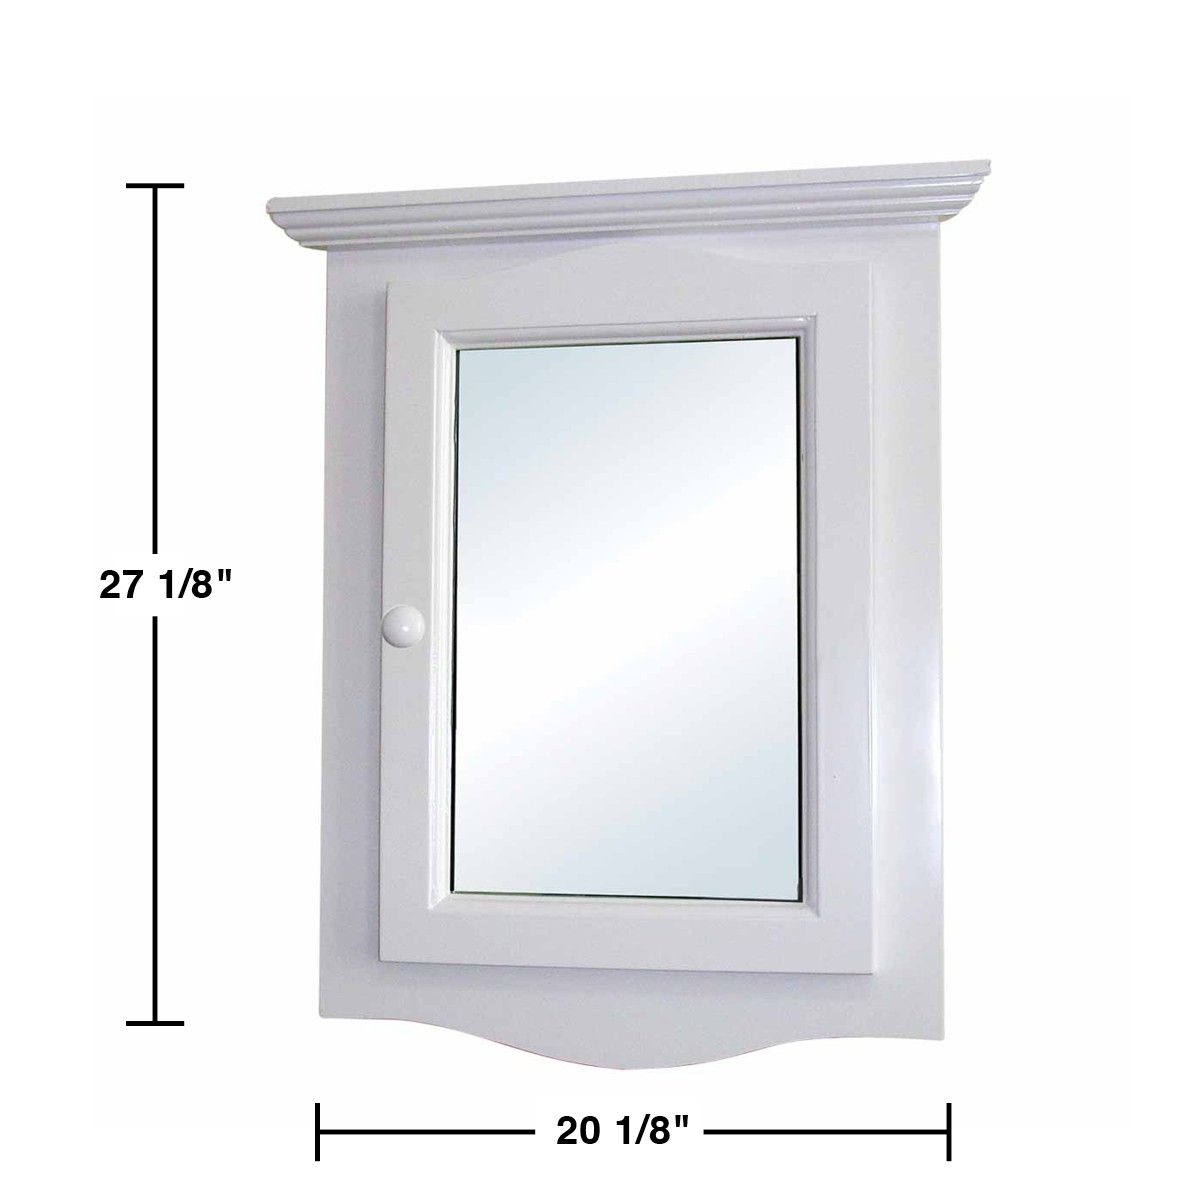 overstock hardware free clean mount product saver hardwood assembled mirror home shipping medicine wall recessed pre door easy included corner fully shelves white cabinet garden two space today